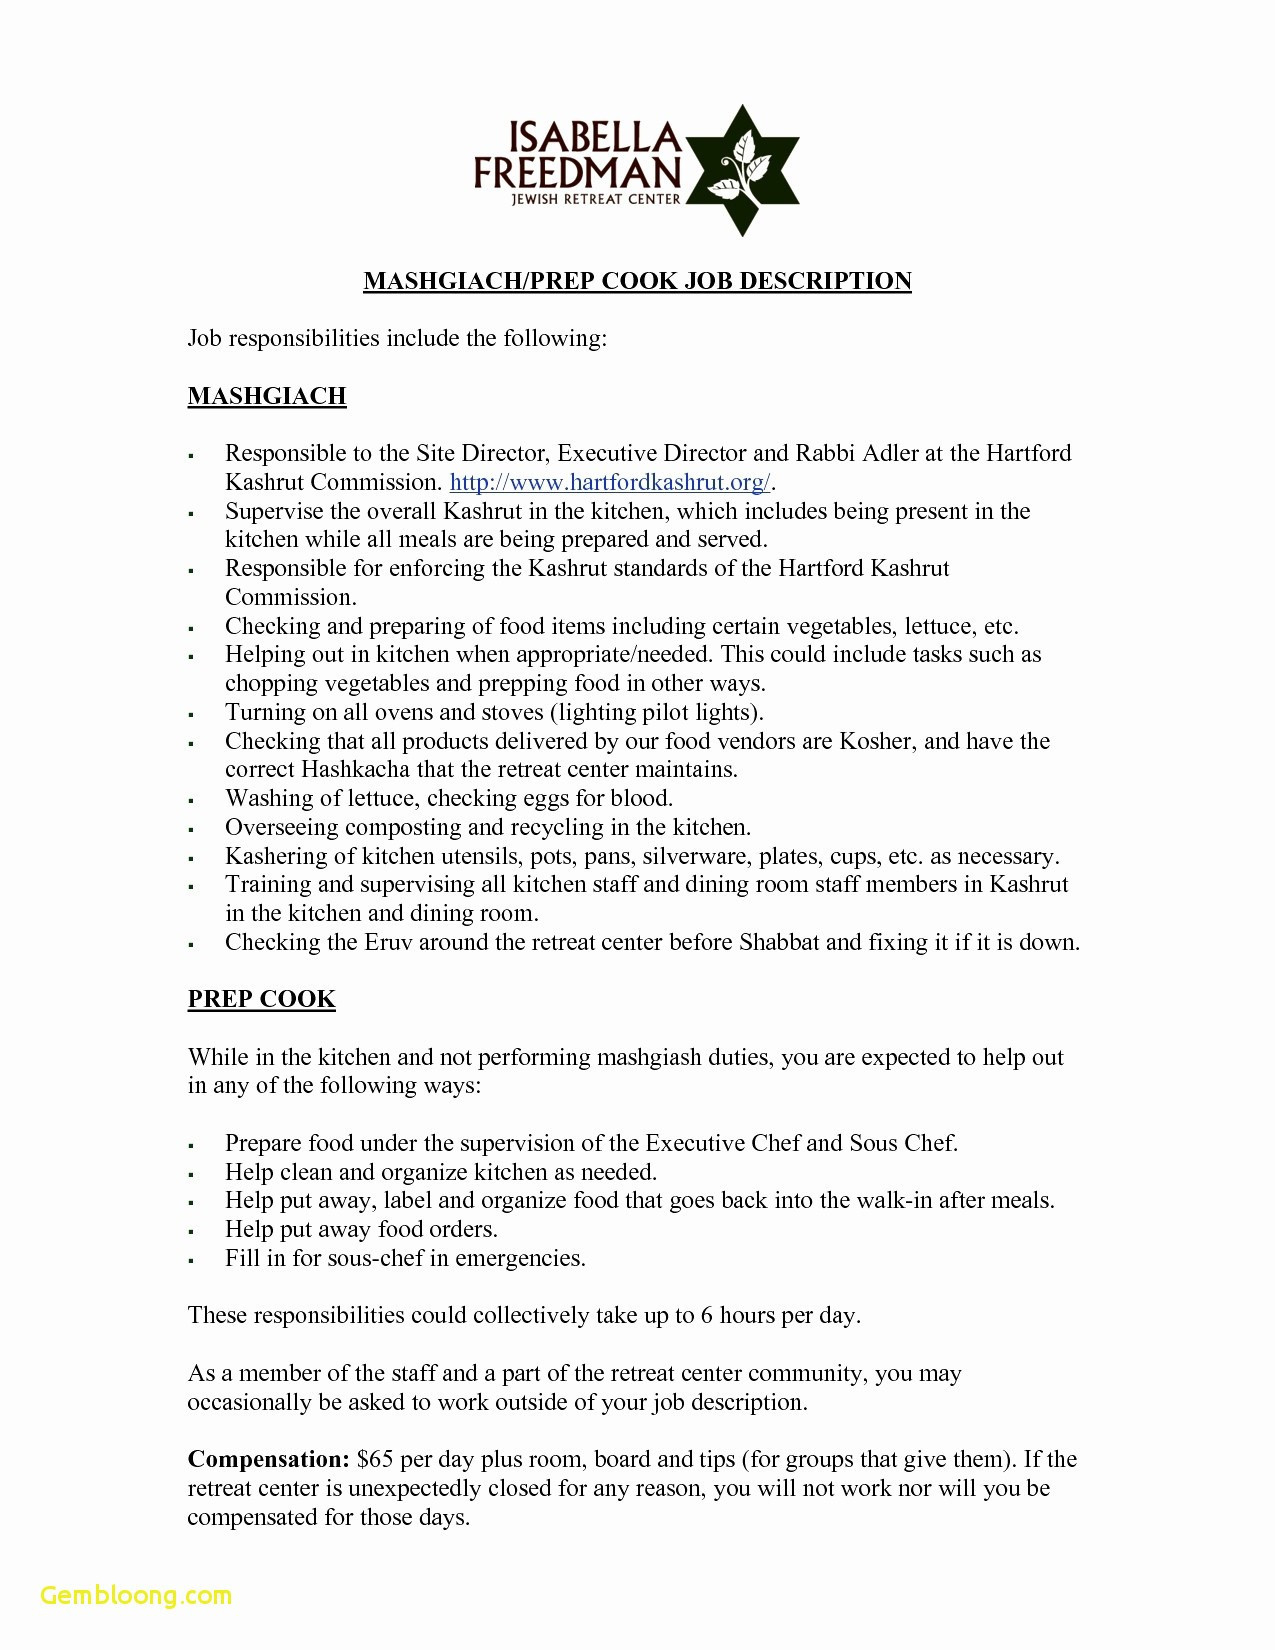 Pre Hire Letter Template - Resume Templates Copy and Paste Simple New Job Fer Letter Template